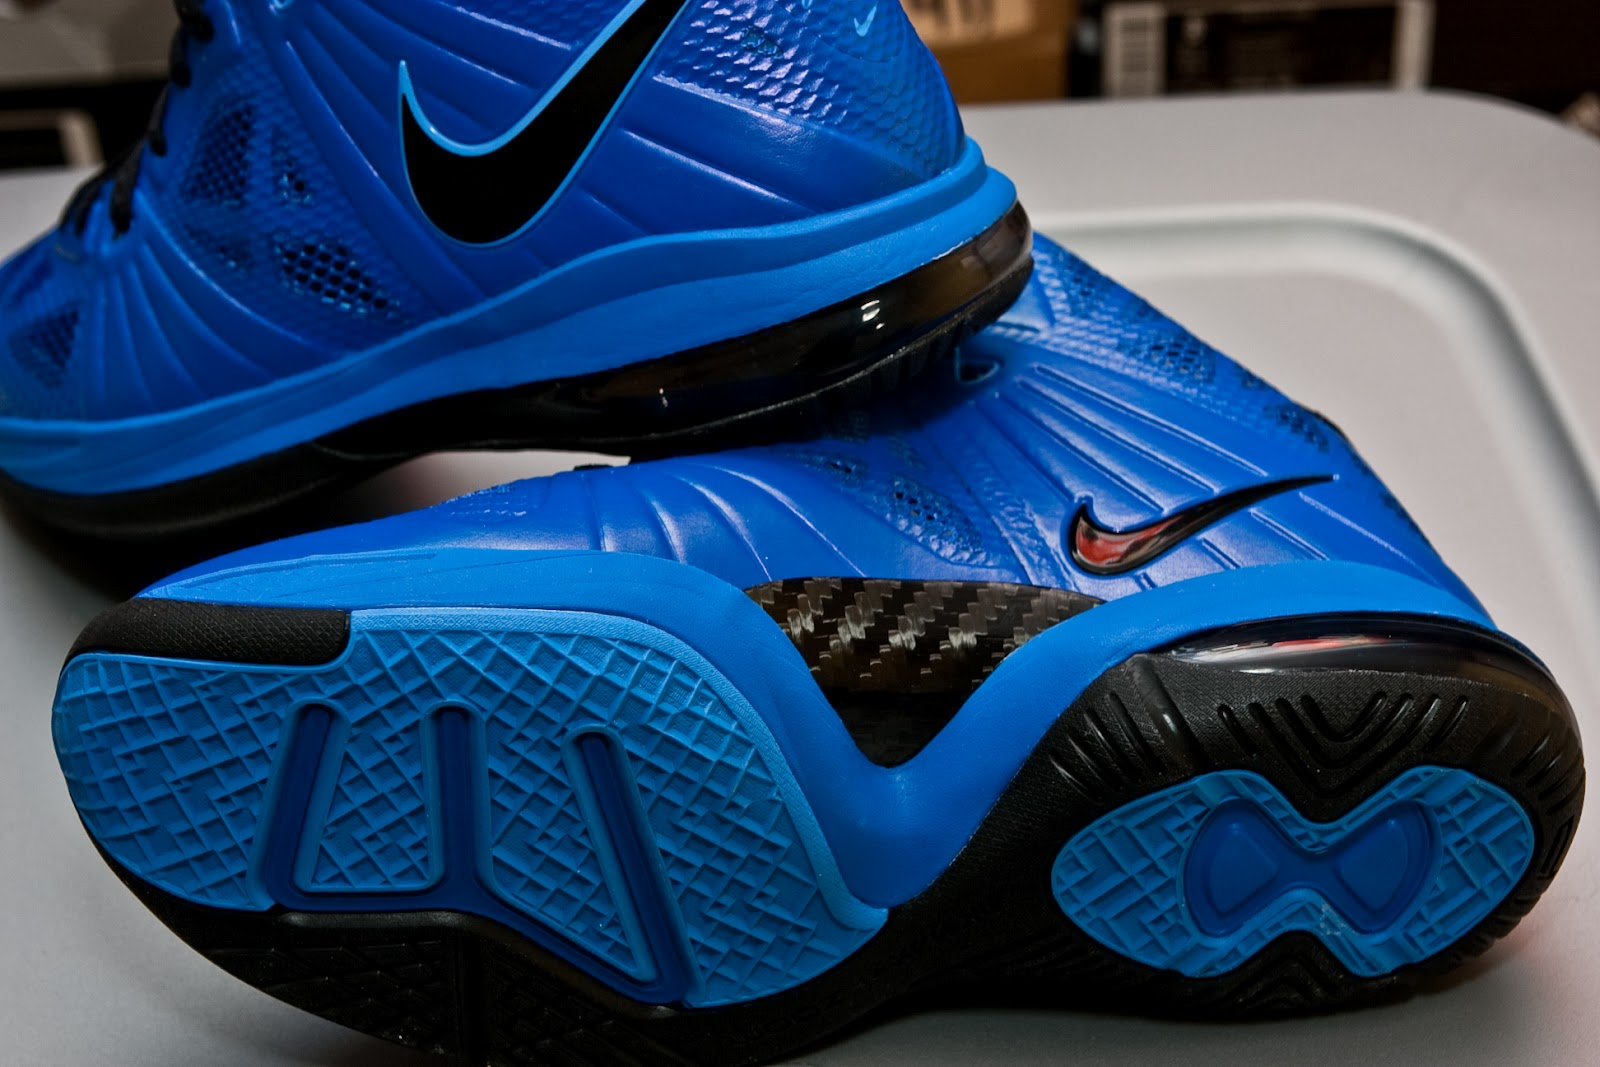 lebron 8 royal blue - photo #25